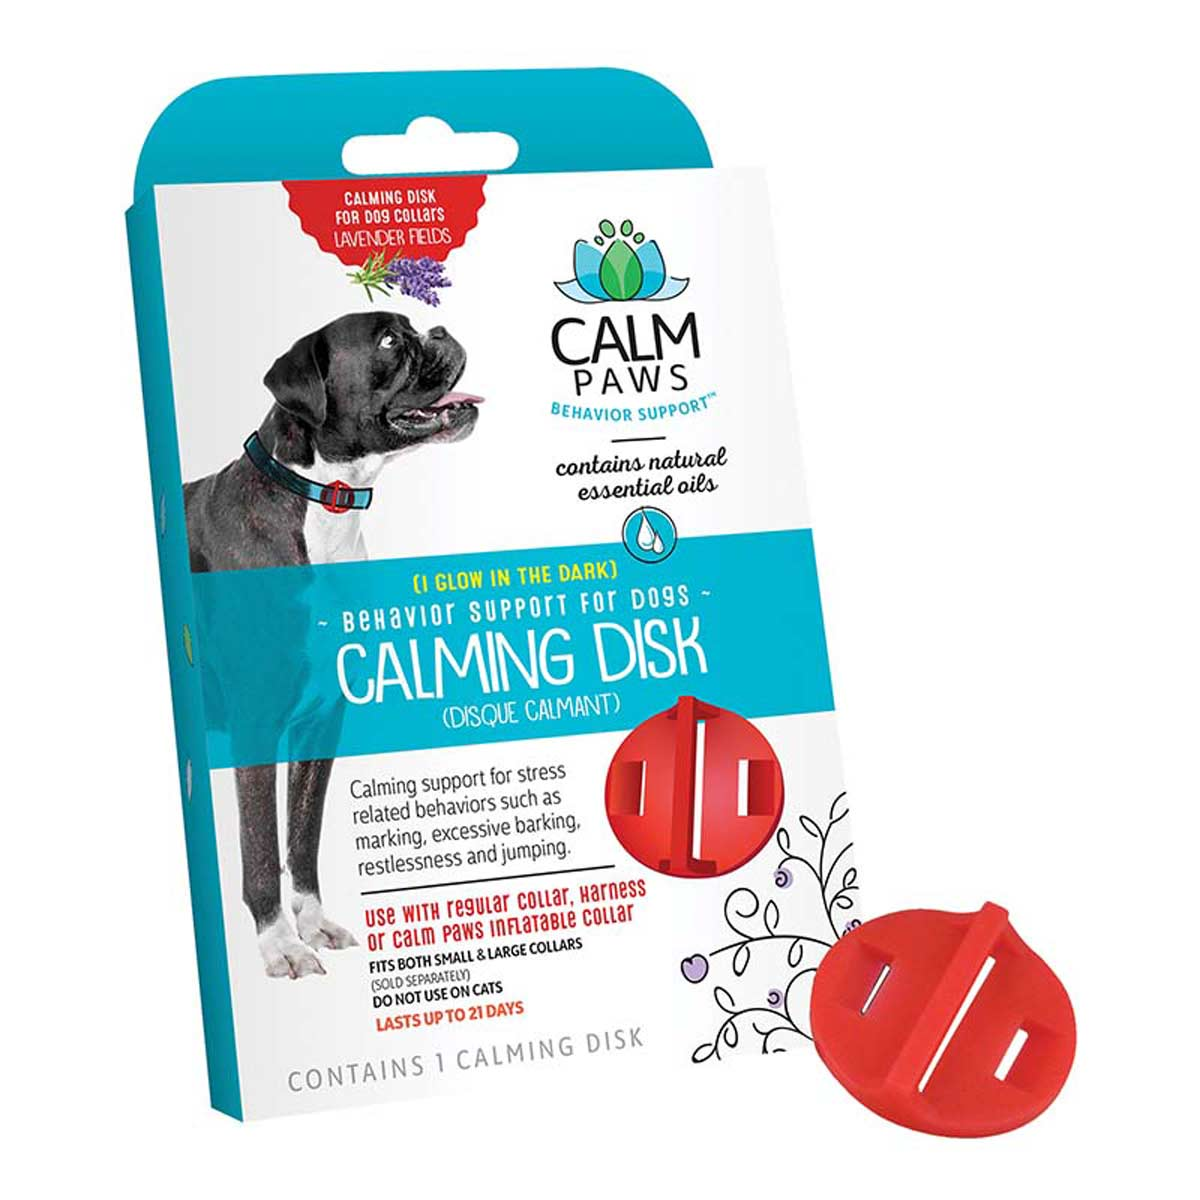 Front of Box for Calm Paws Calming Disk for Dogs